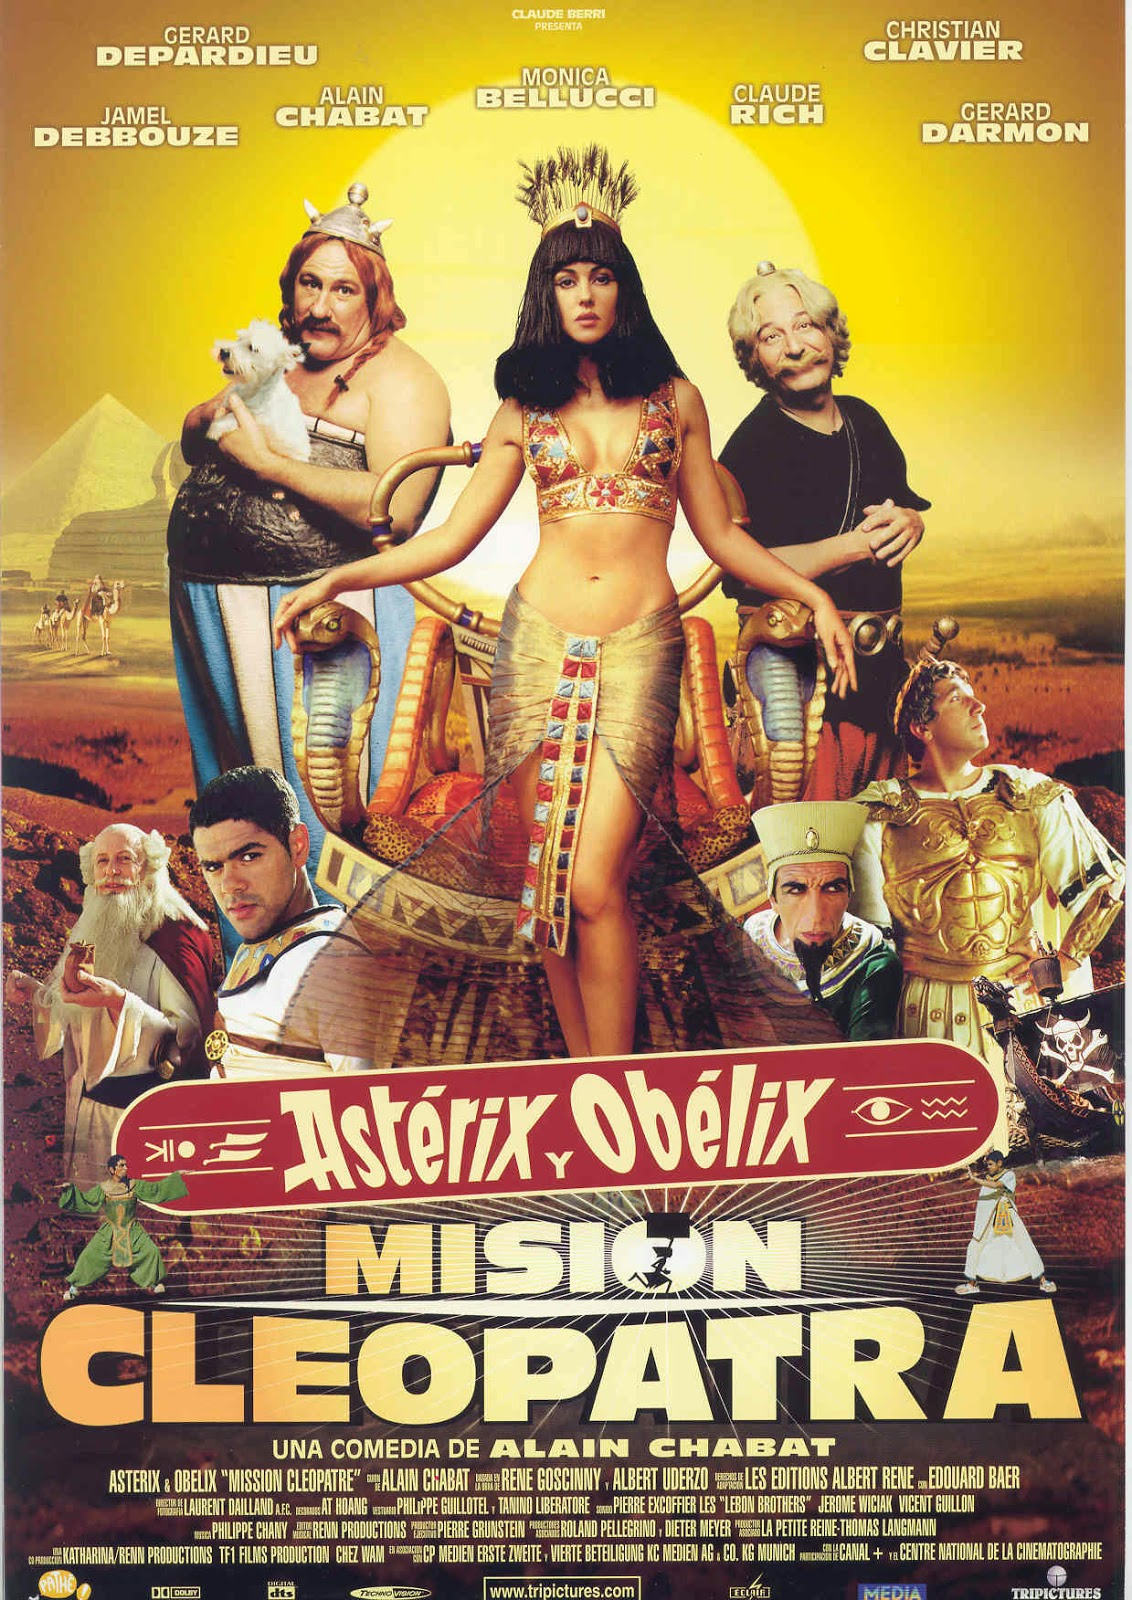 Asterix and Obelix: Mission Cleopatra (2002) ταινιες online seires xrysoi greek subs